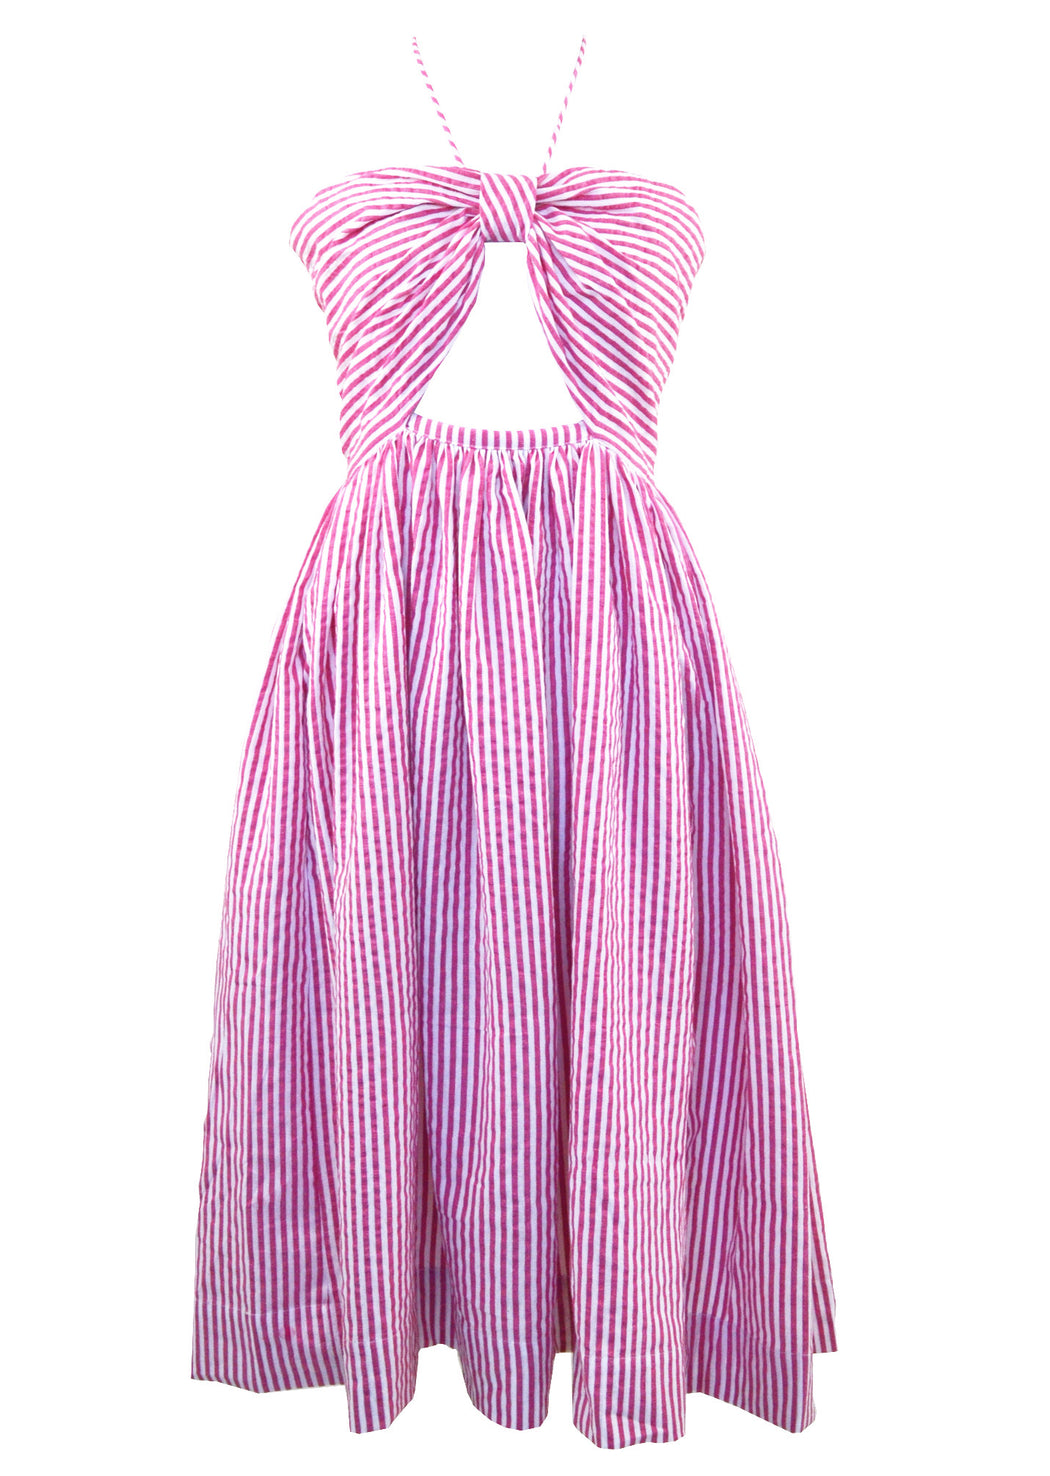 Goldie dress pink - Family Affairs